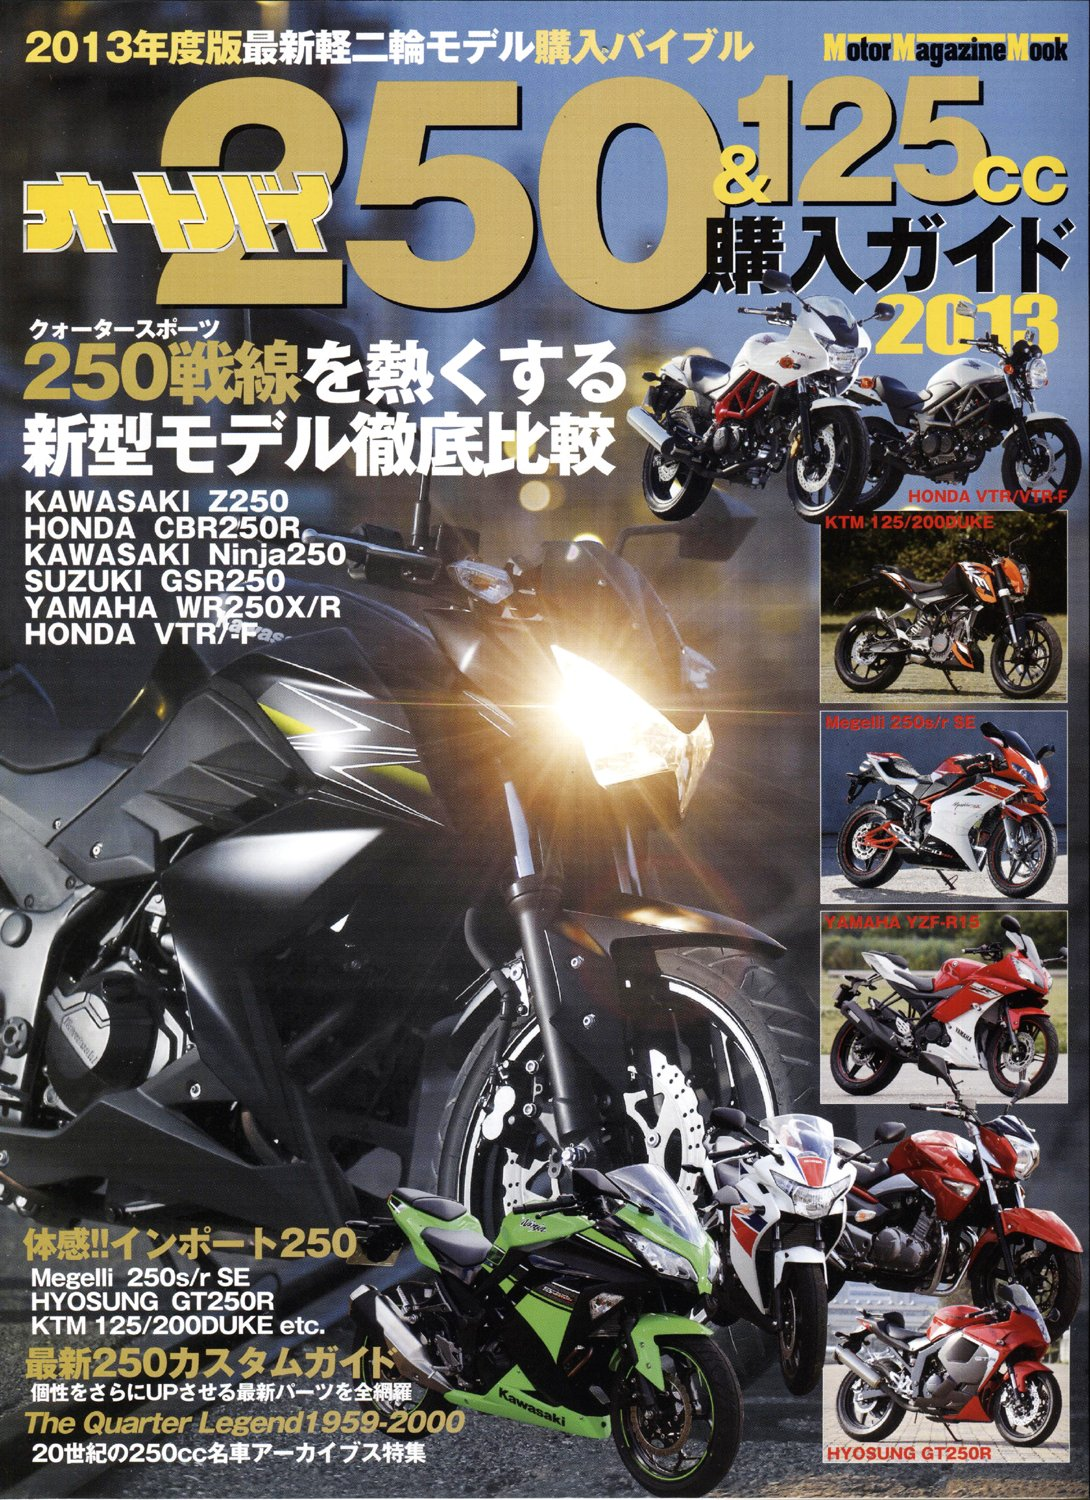 250 & 125cc motorcycle Buyers Guide 2013 (Motor Magazine ...